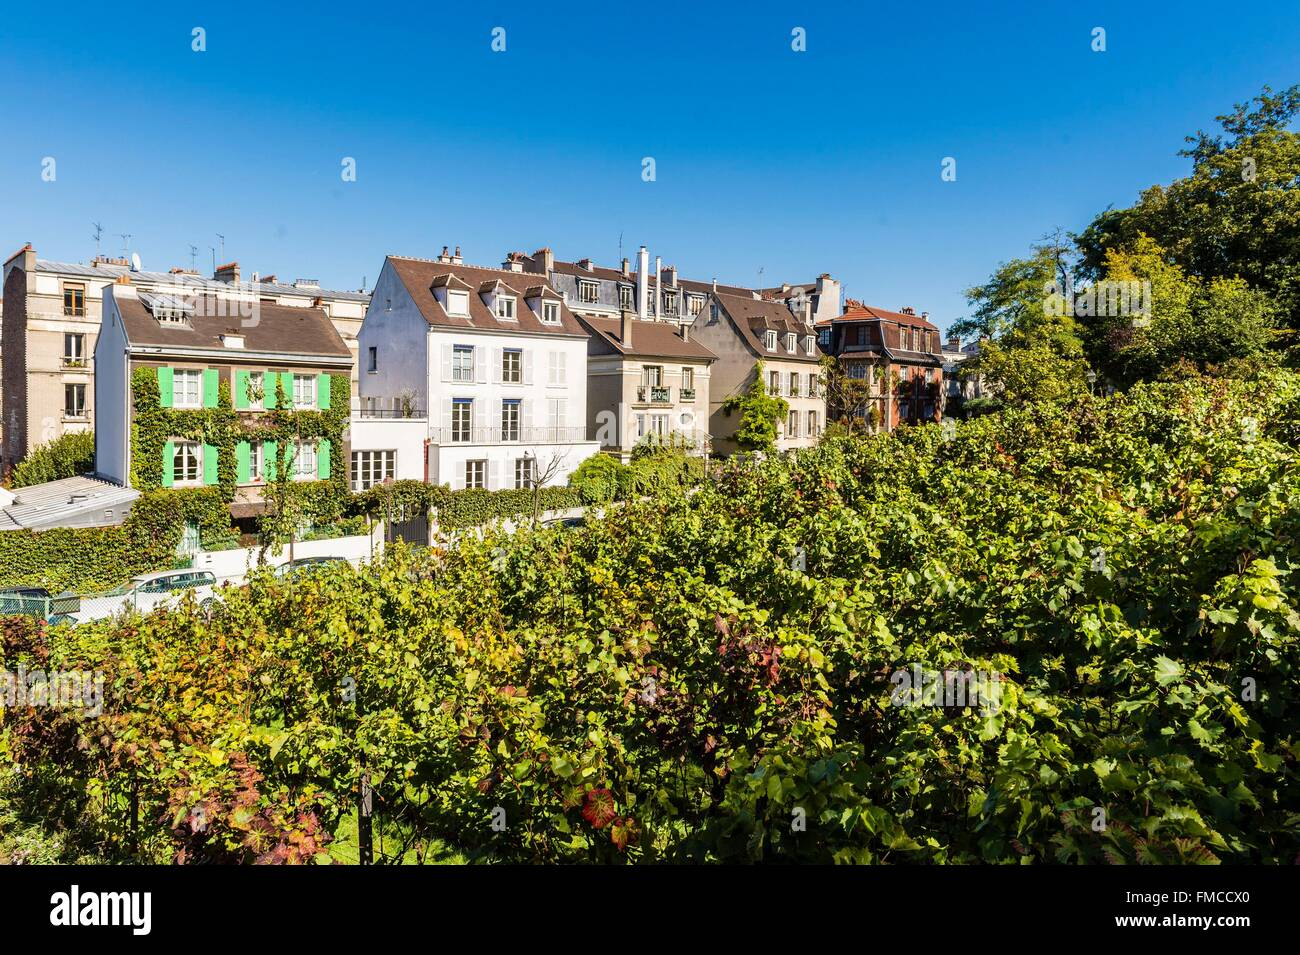 France, Paris, the vine of Montmartre, whose official name is the Clos Montmartre - Stock Image